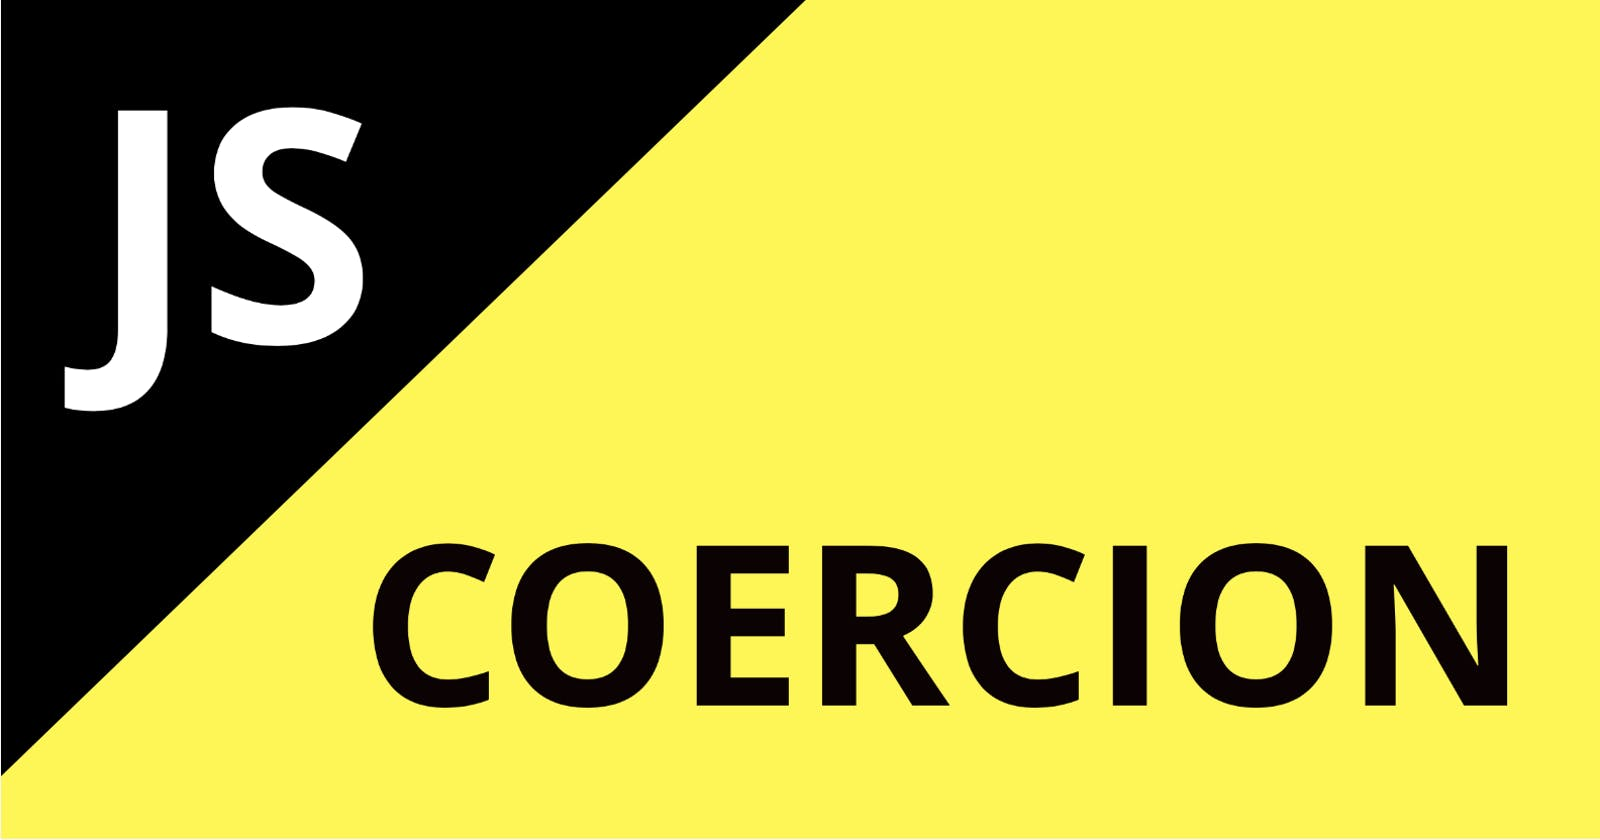 Detailed Guide to Coercion in Javascript